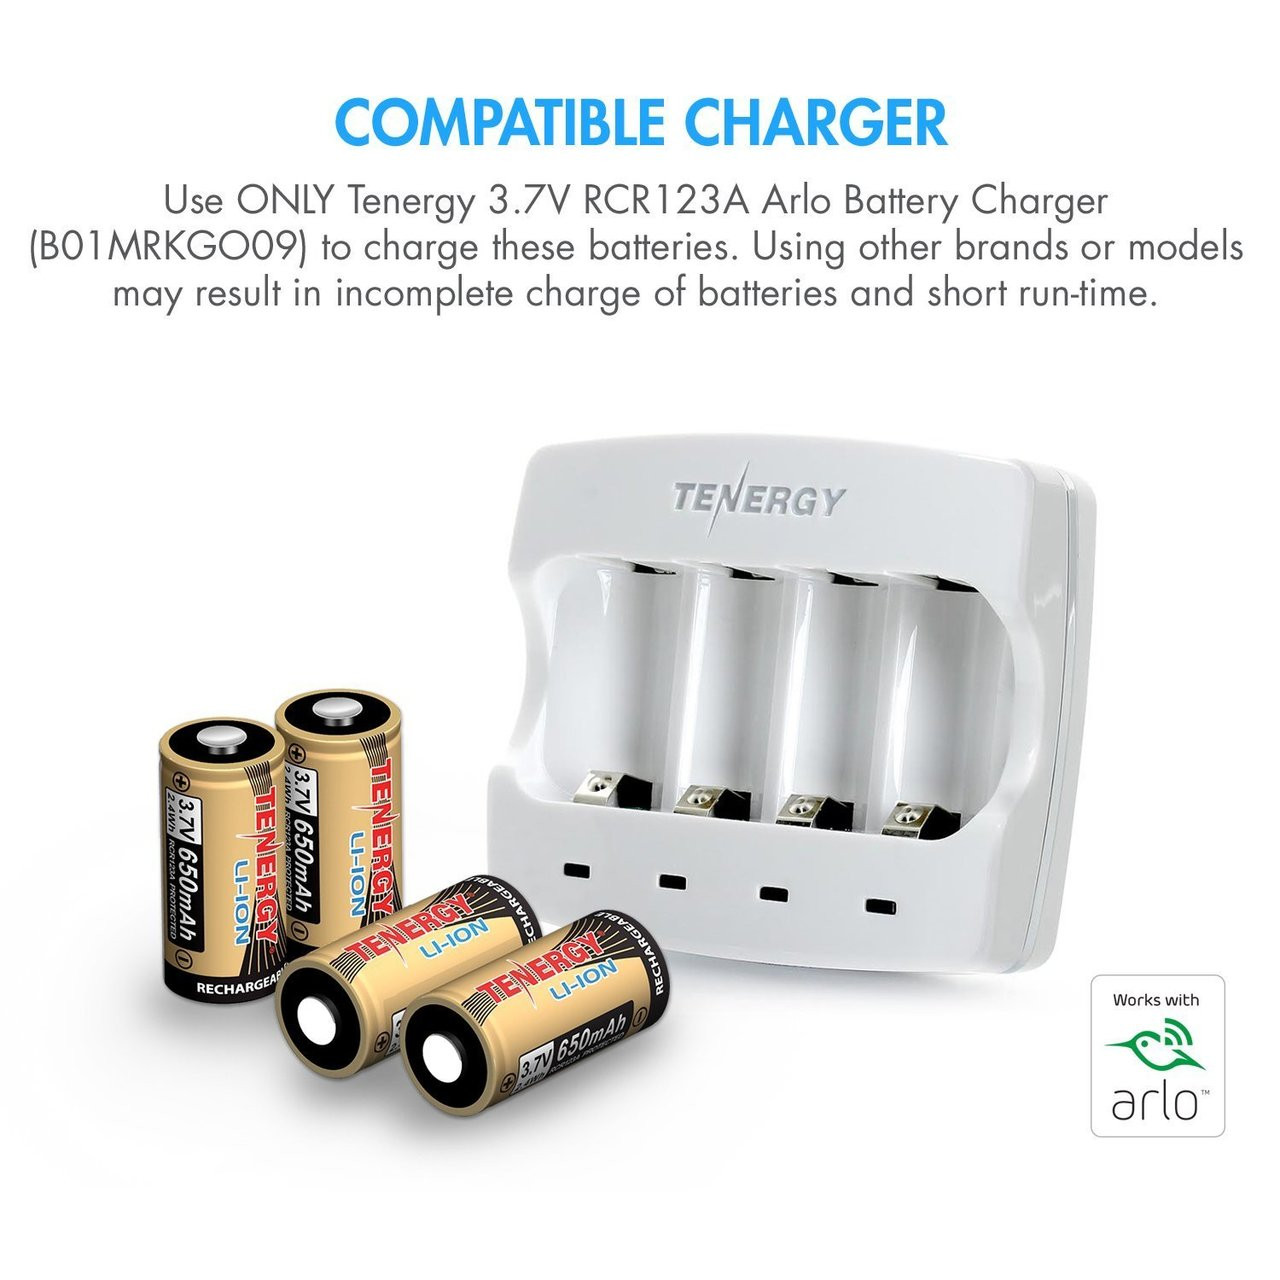 Rechargeable Batteries (12-Pack) Arlo Certified Li-ion 3 7V 650mAh for Arlo  Smart Security Camera, UL & UN Certified, Bonus 3 Battery Cases